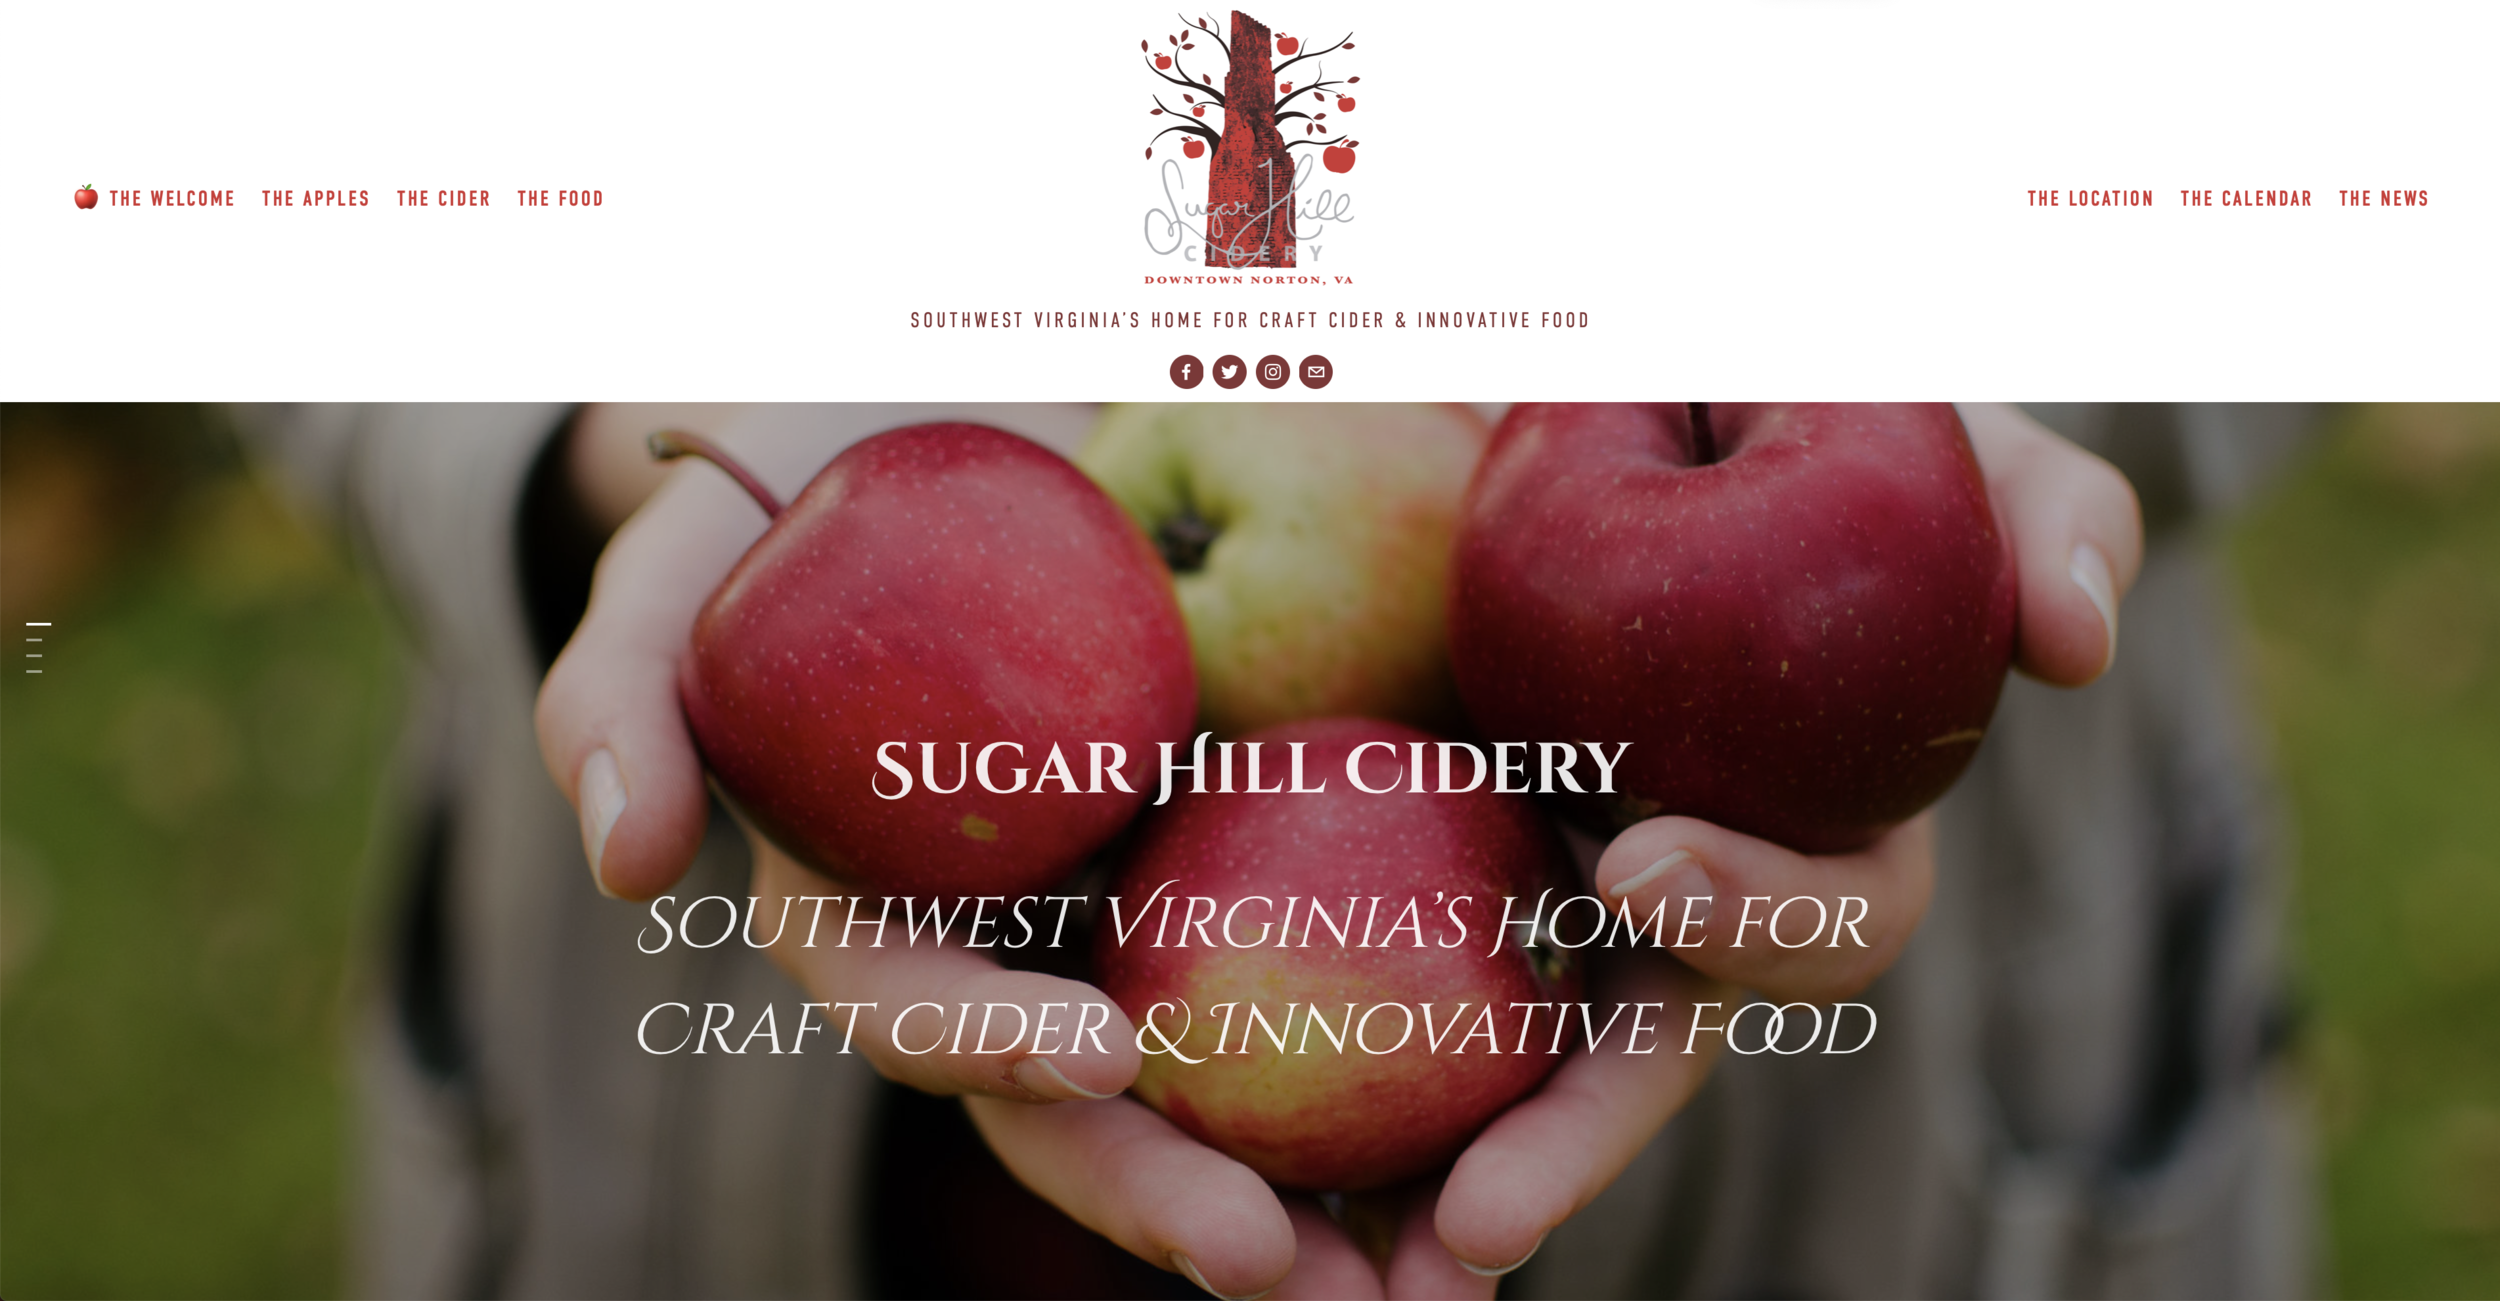 Sugar Hill Cidery